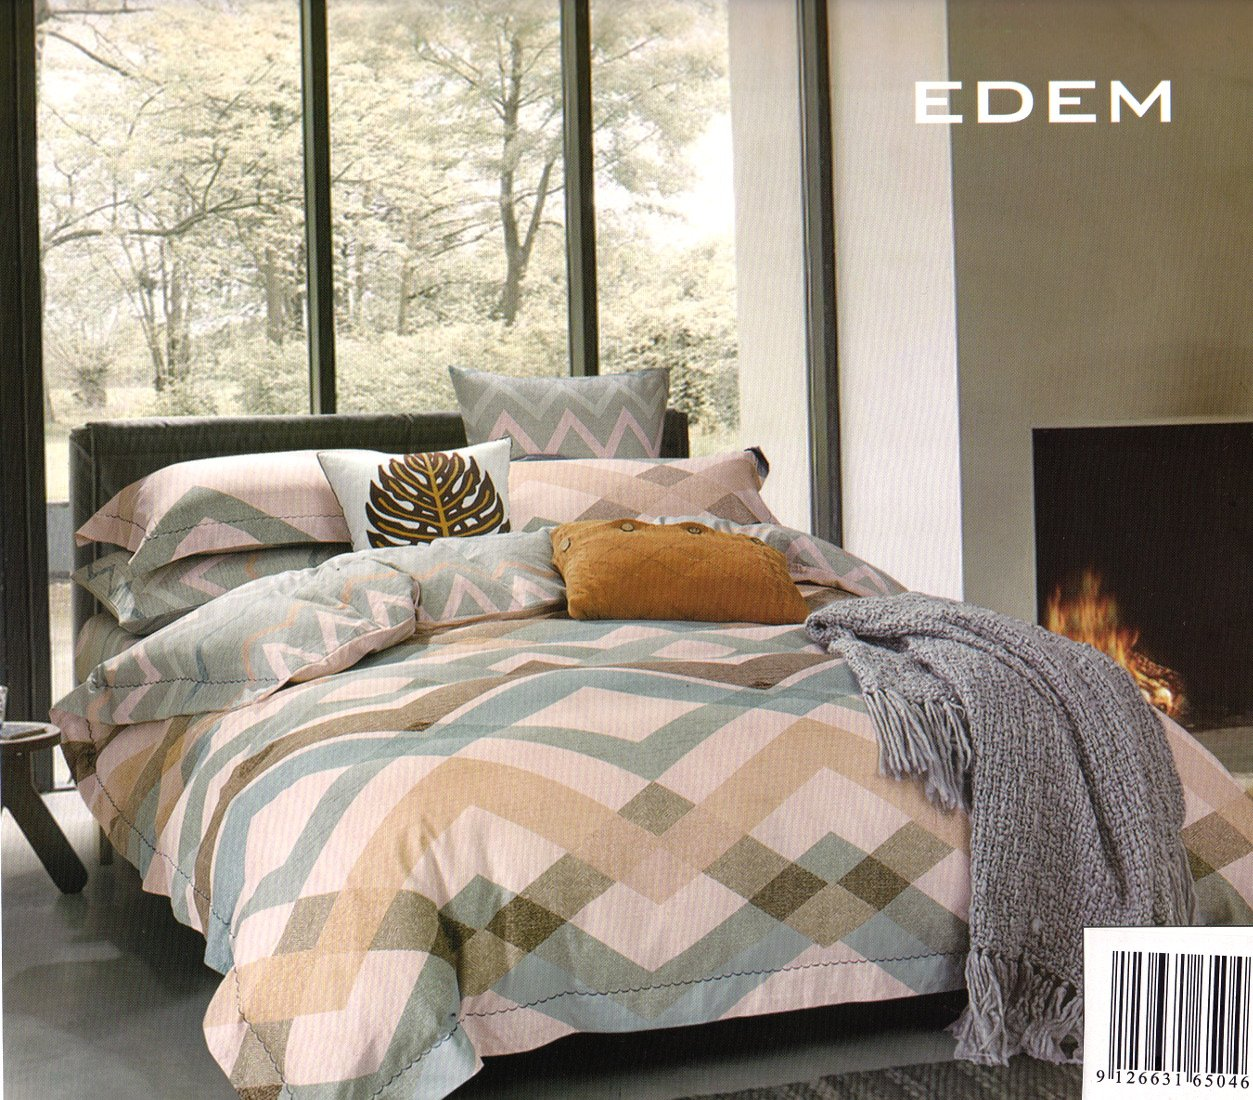 Edem Linen Cotton Quilt Cover Set